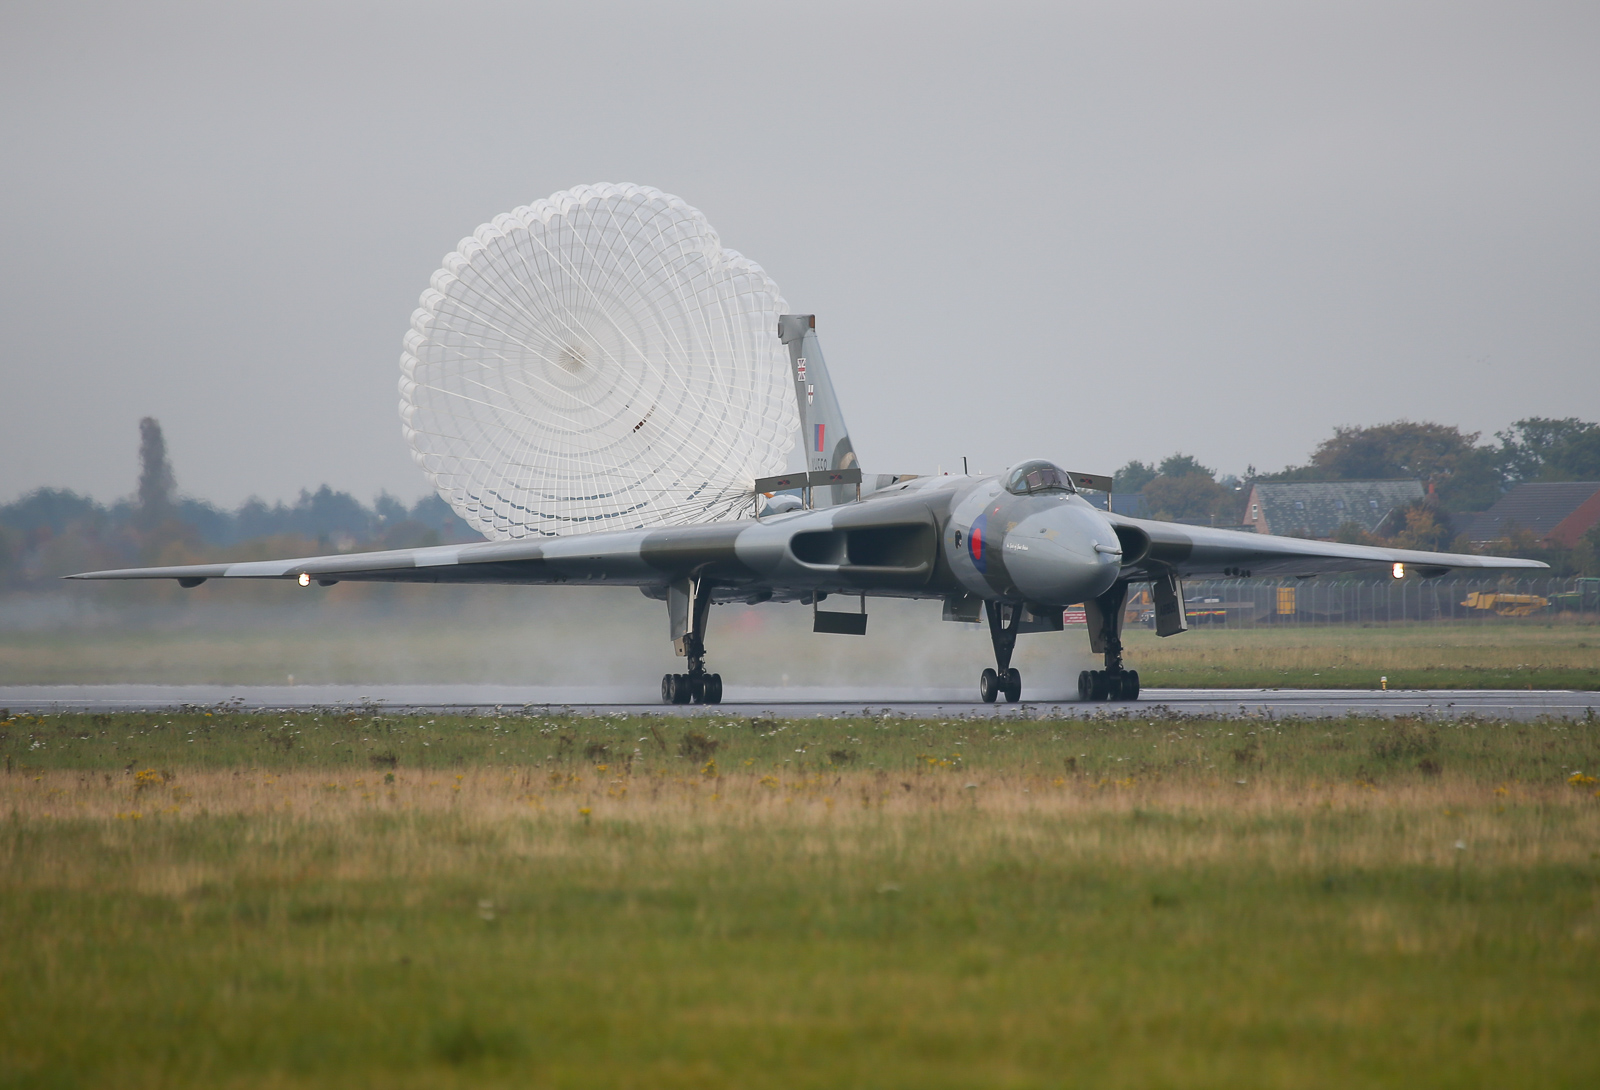 XH558 on rollout with her parachute deployed. Enthusiasts should at least get to see this sight in the future during high speed taxi runs, though never after a flight again. (photo by Steven Comber)